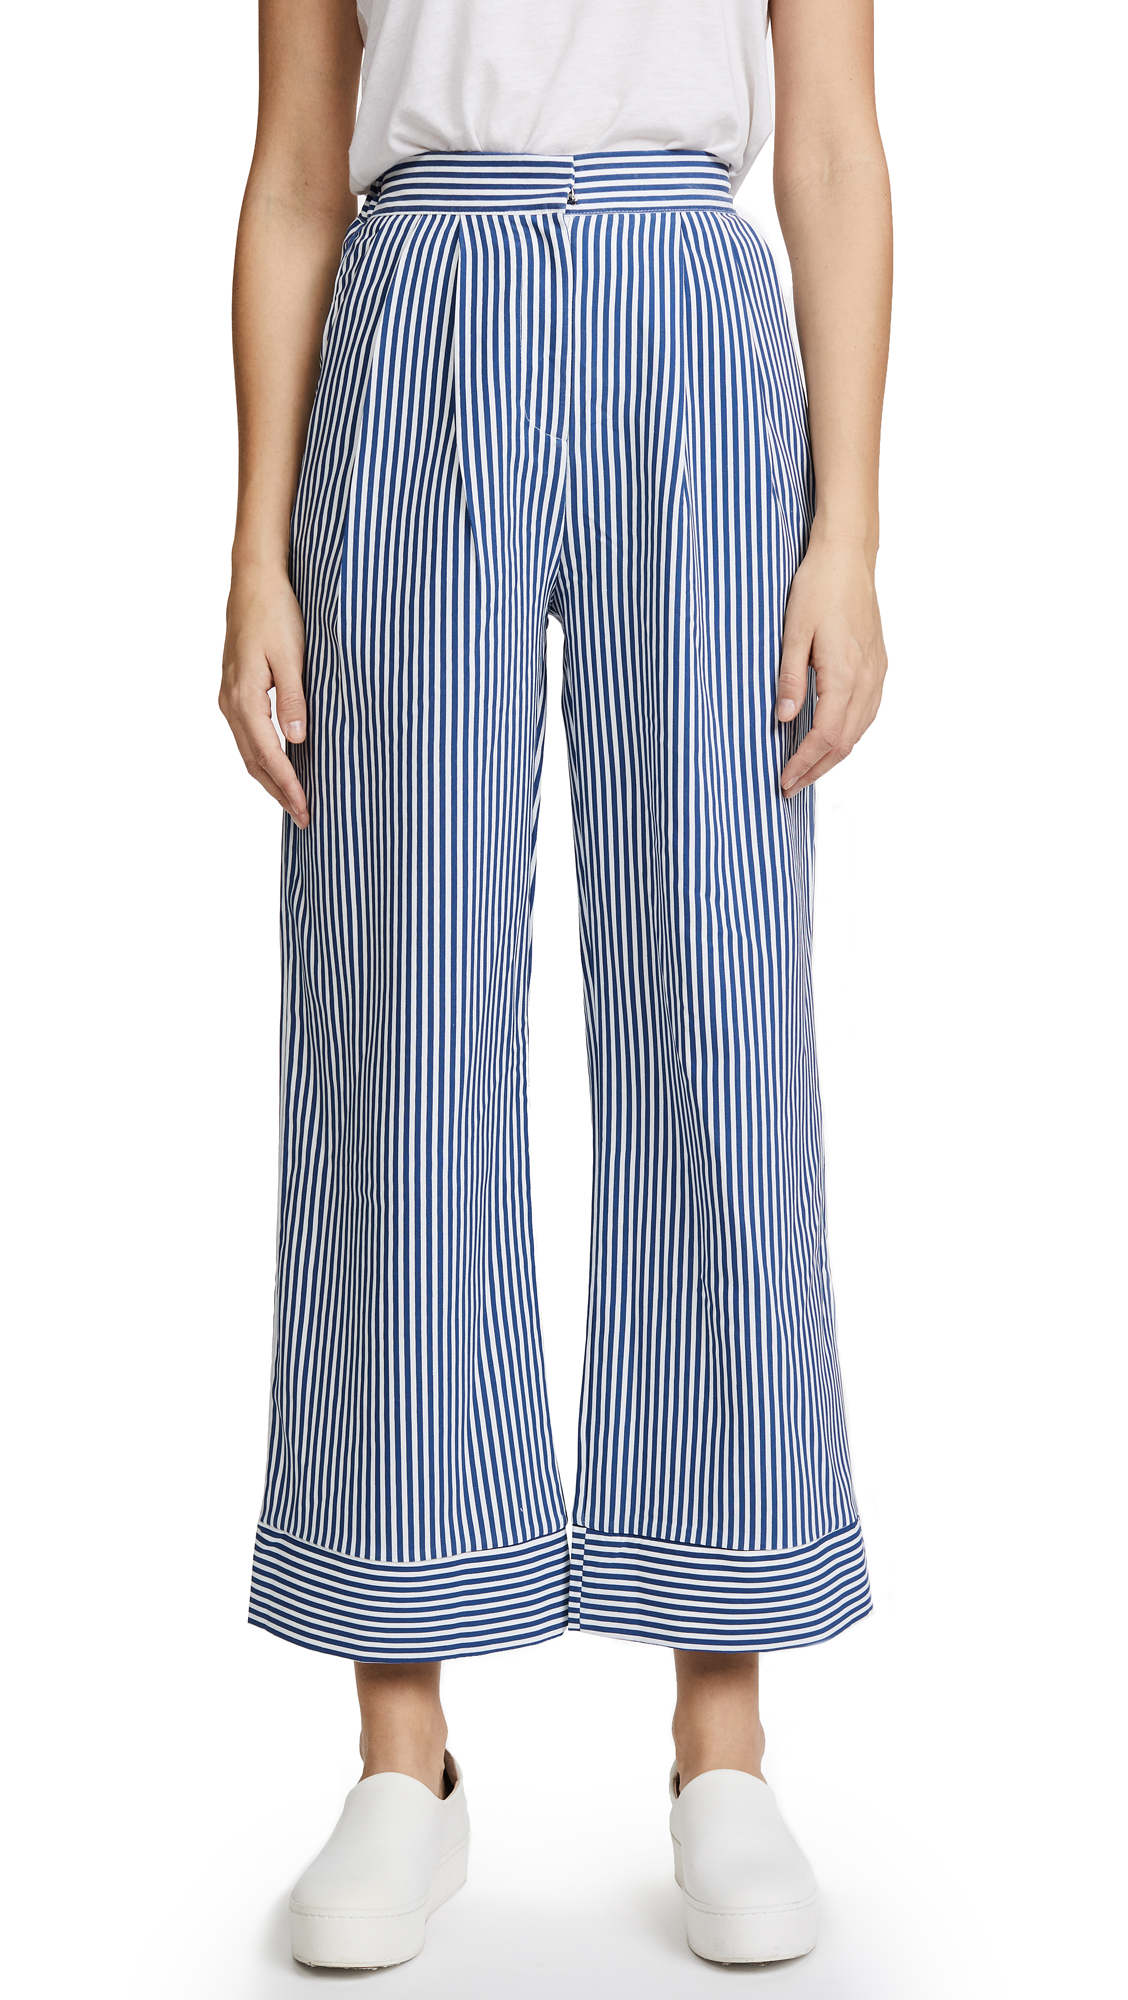 STYLEKEEPERS The Overboard Pants - Striped Blue